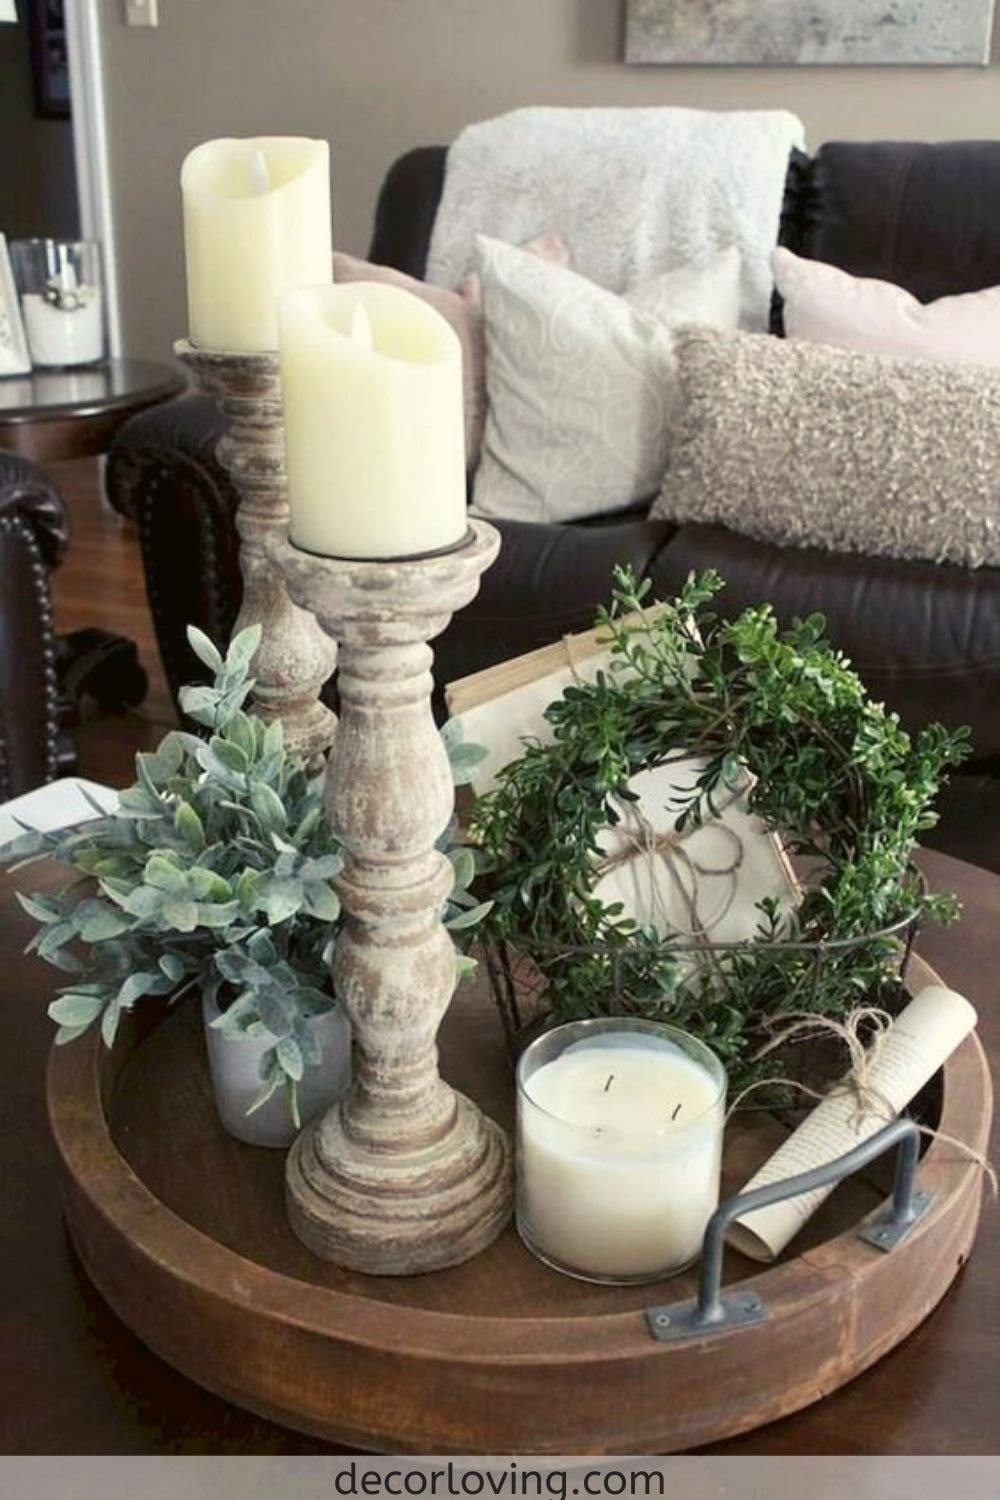 21 Fantastic Farmhouse Living Room Decor Ideas On A Budget You Must Try In 2020 Table Decor Living Room Farm House Living Room Farmhouse Candlesticks